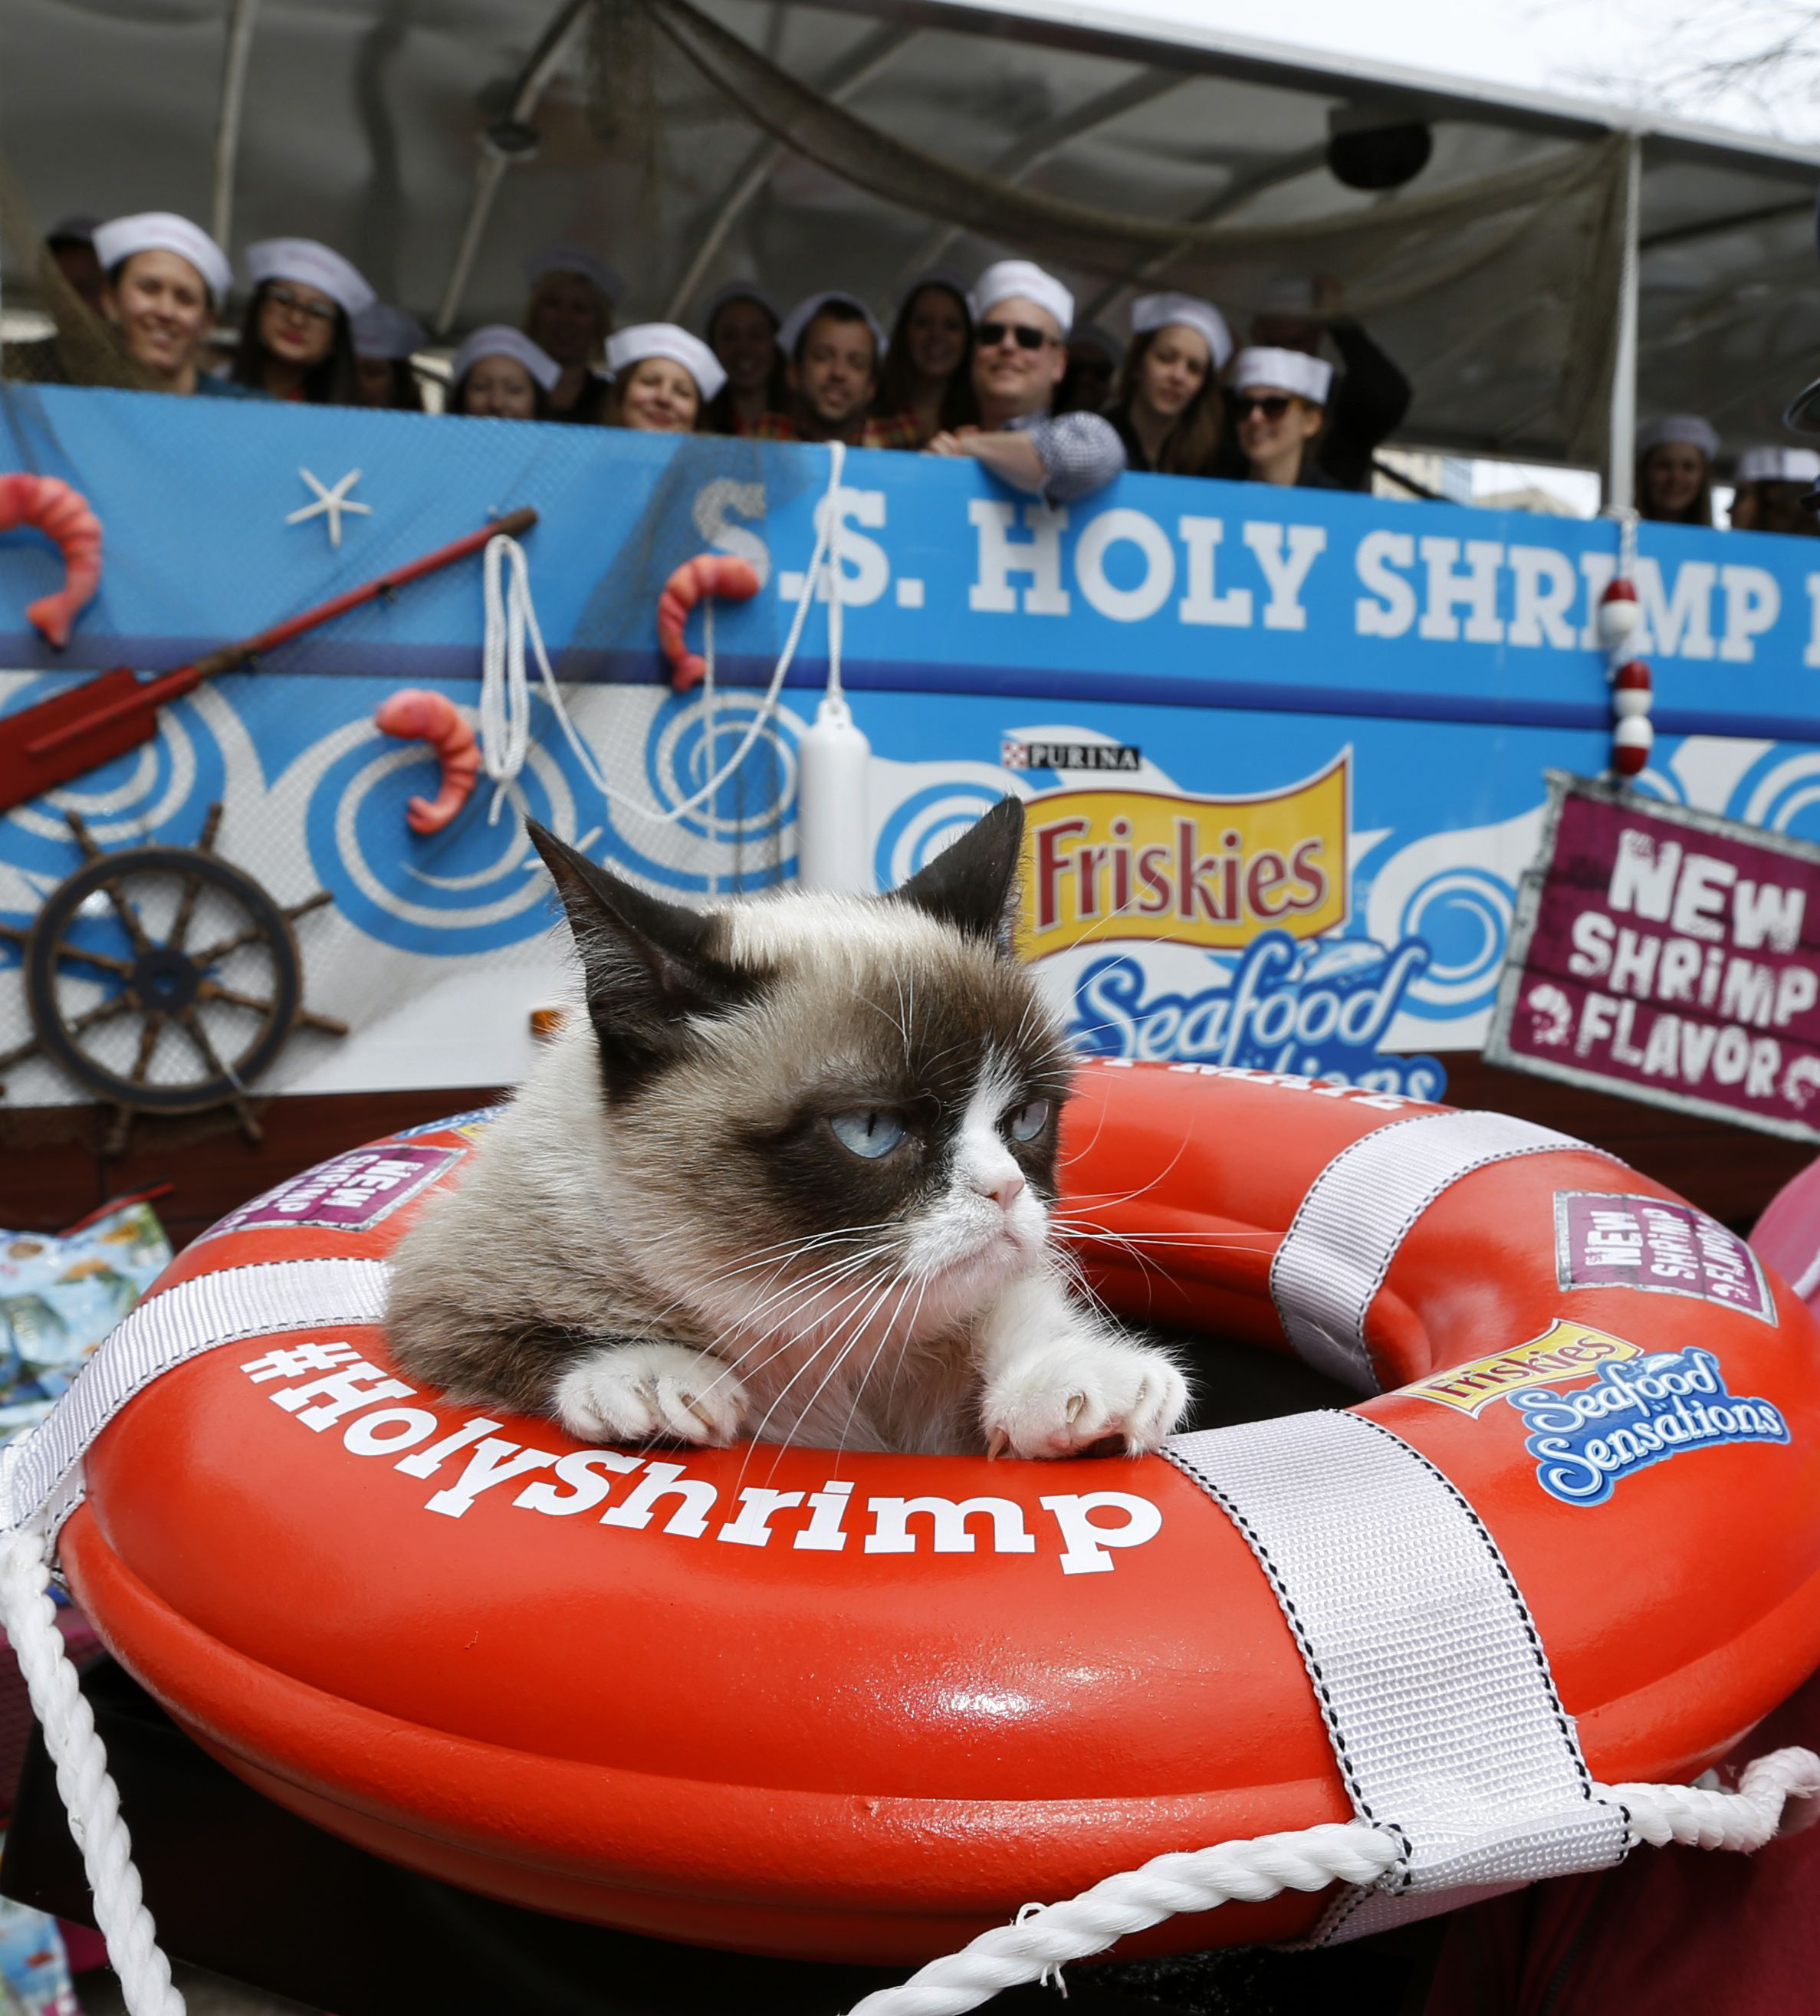 """Passengers join Grumpy Cat, the """"Worst Mate,"""" of the Friskies' S.S. Holy Shrimp Boat as it embarks on its maiden voyage during the Austin-based festival on Friday, March 7, 2014. The ship, designed by Friskies to promote the NEW shrimp flavor in Seafood Sensations cat food, delivered Grumpy Cat in style to the Mashable House for a sea-faring themed photo booth appearance. (Erich Schlegel/AP Images for Friskies)"""